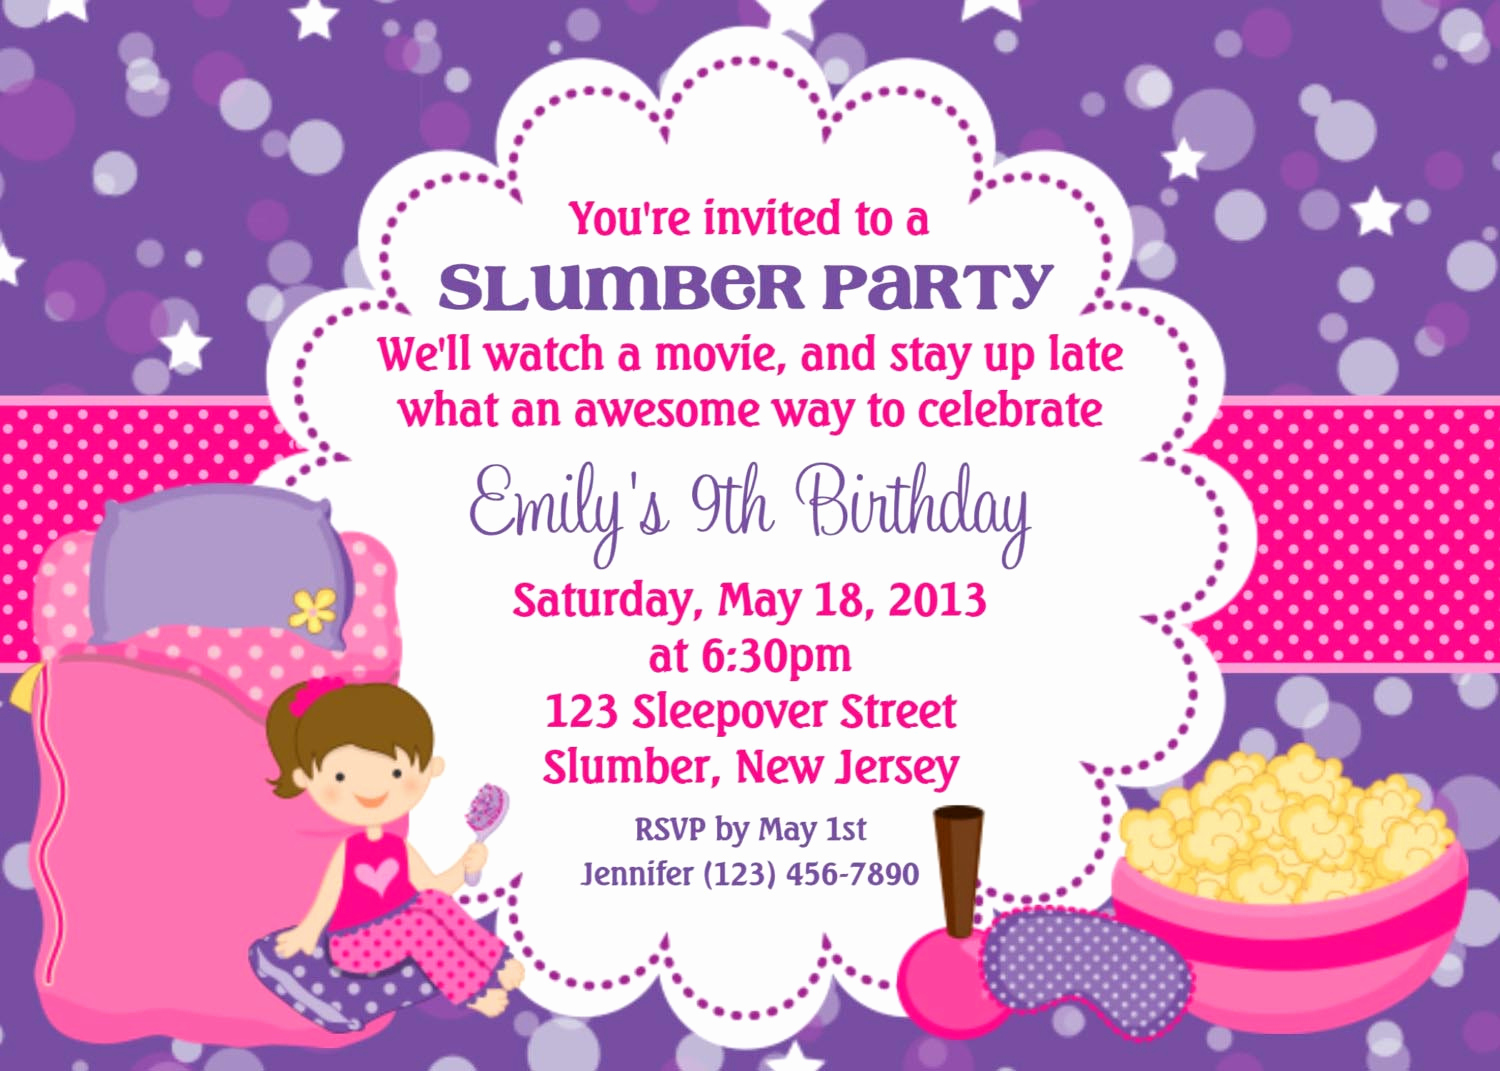 Spa Party Invitation Templates New Making Spa Party Invitations